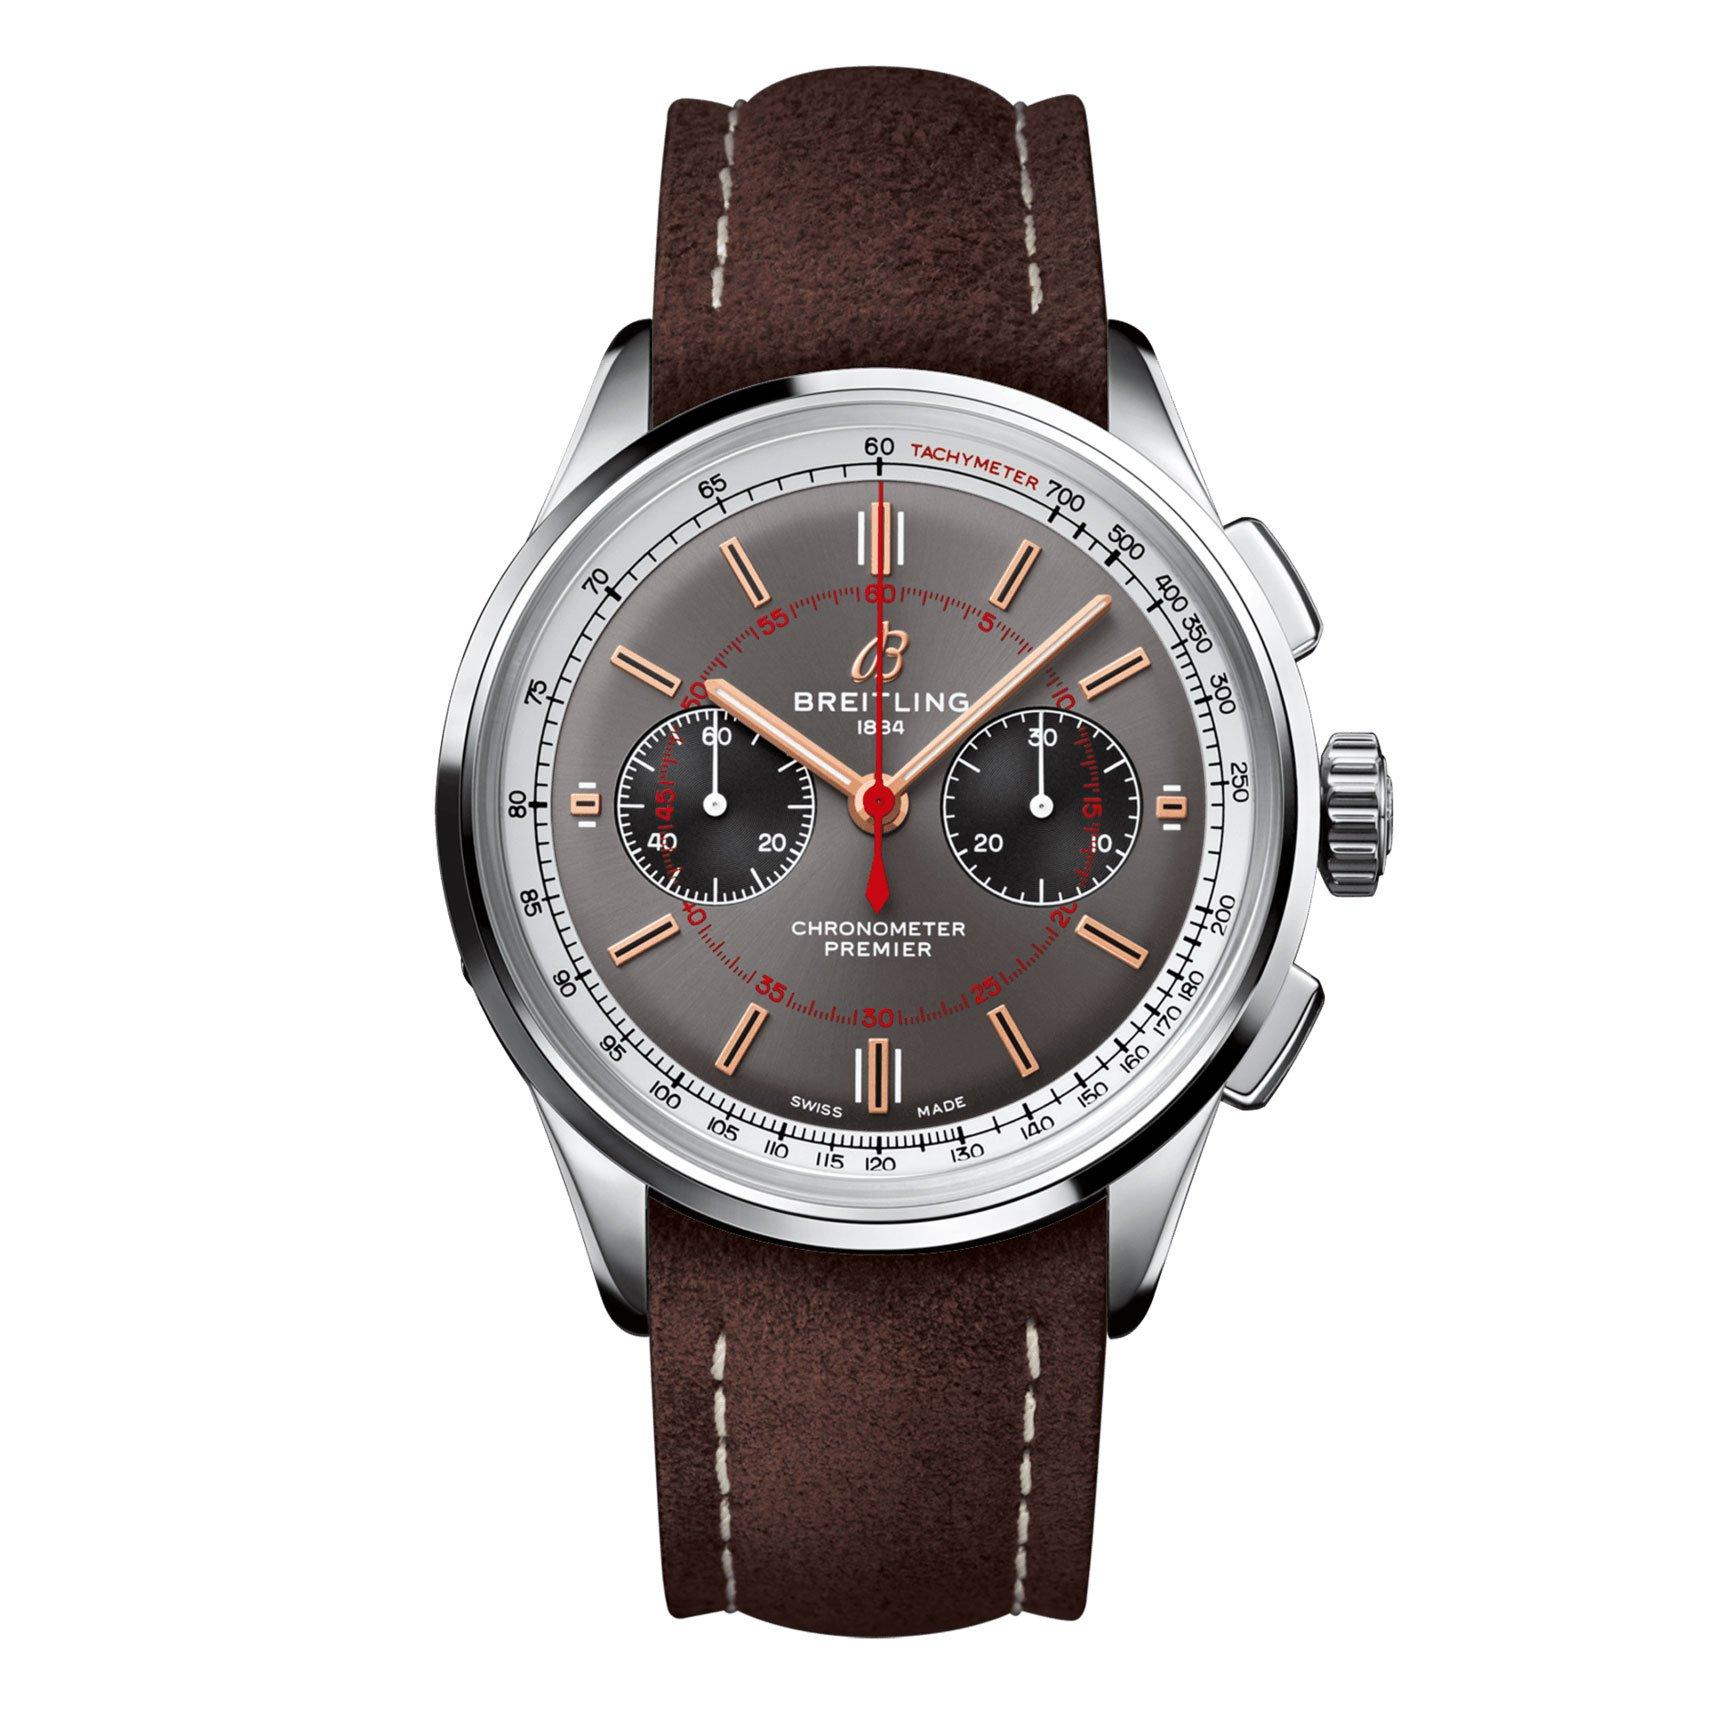 Breitling Premier B01 Chronograph 42 Wheels And Waves Limited Edition Men's Watch